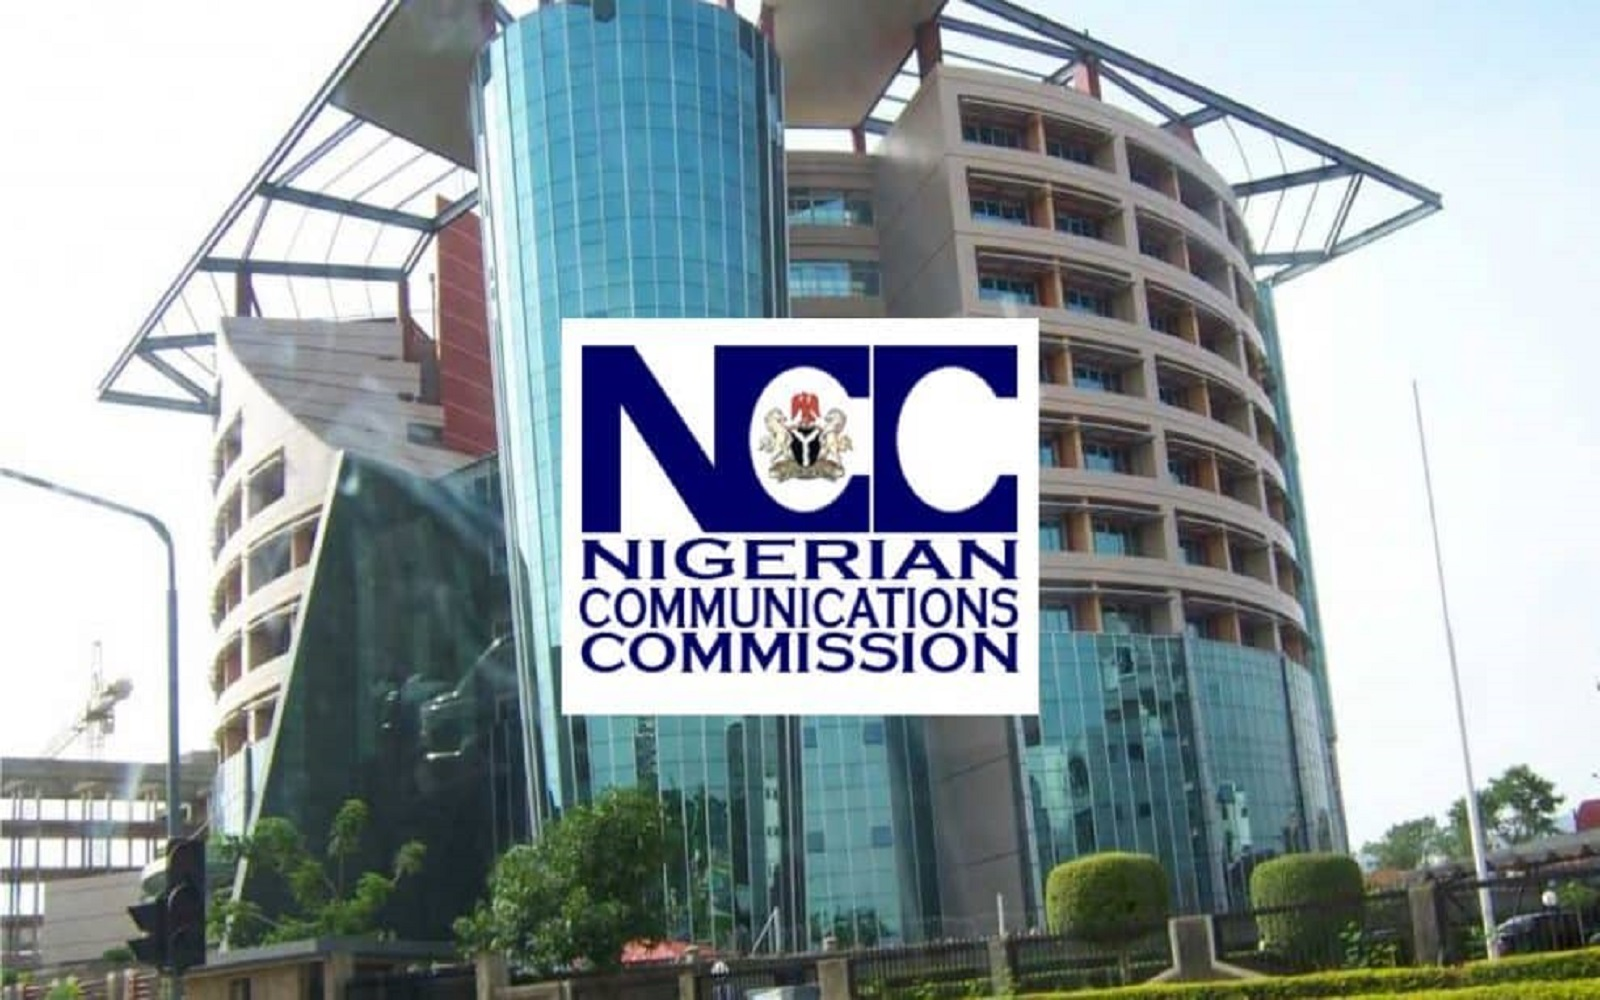 NCC Assures An Increase Broadband Access